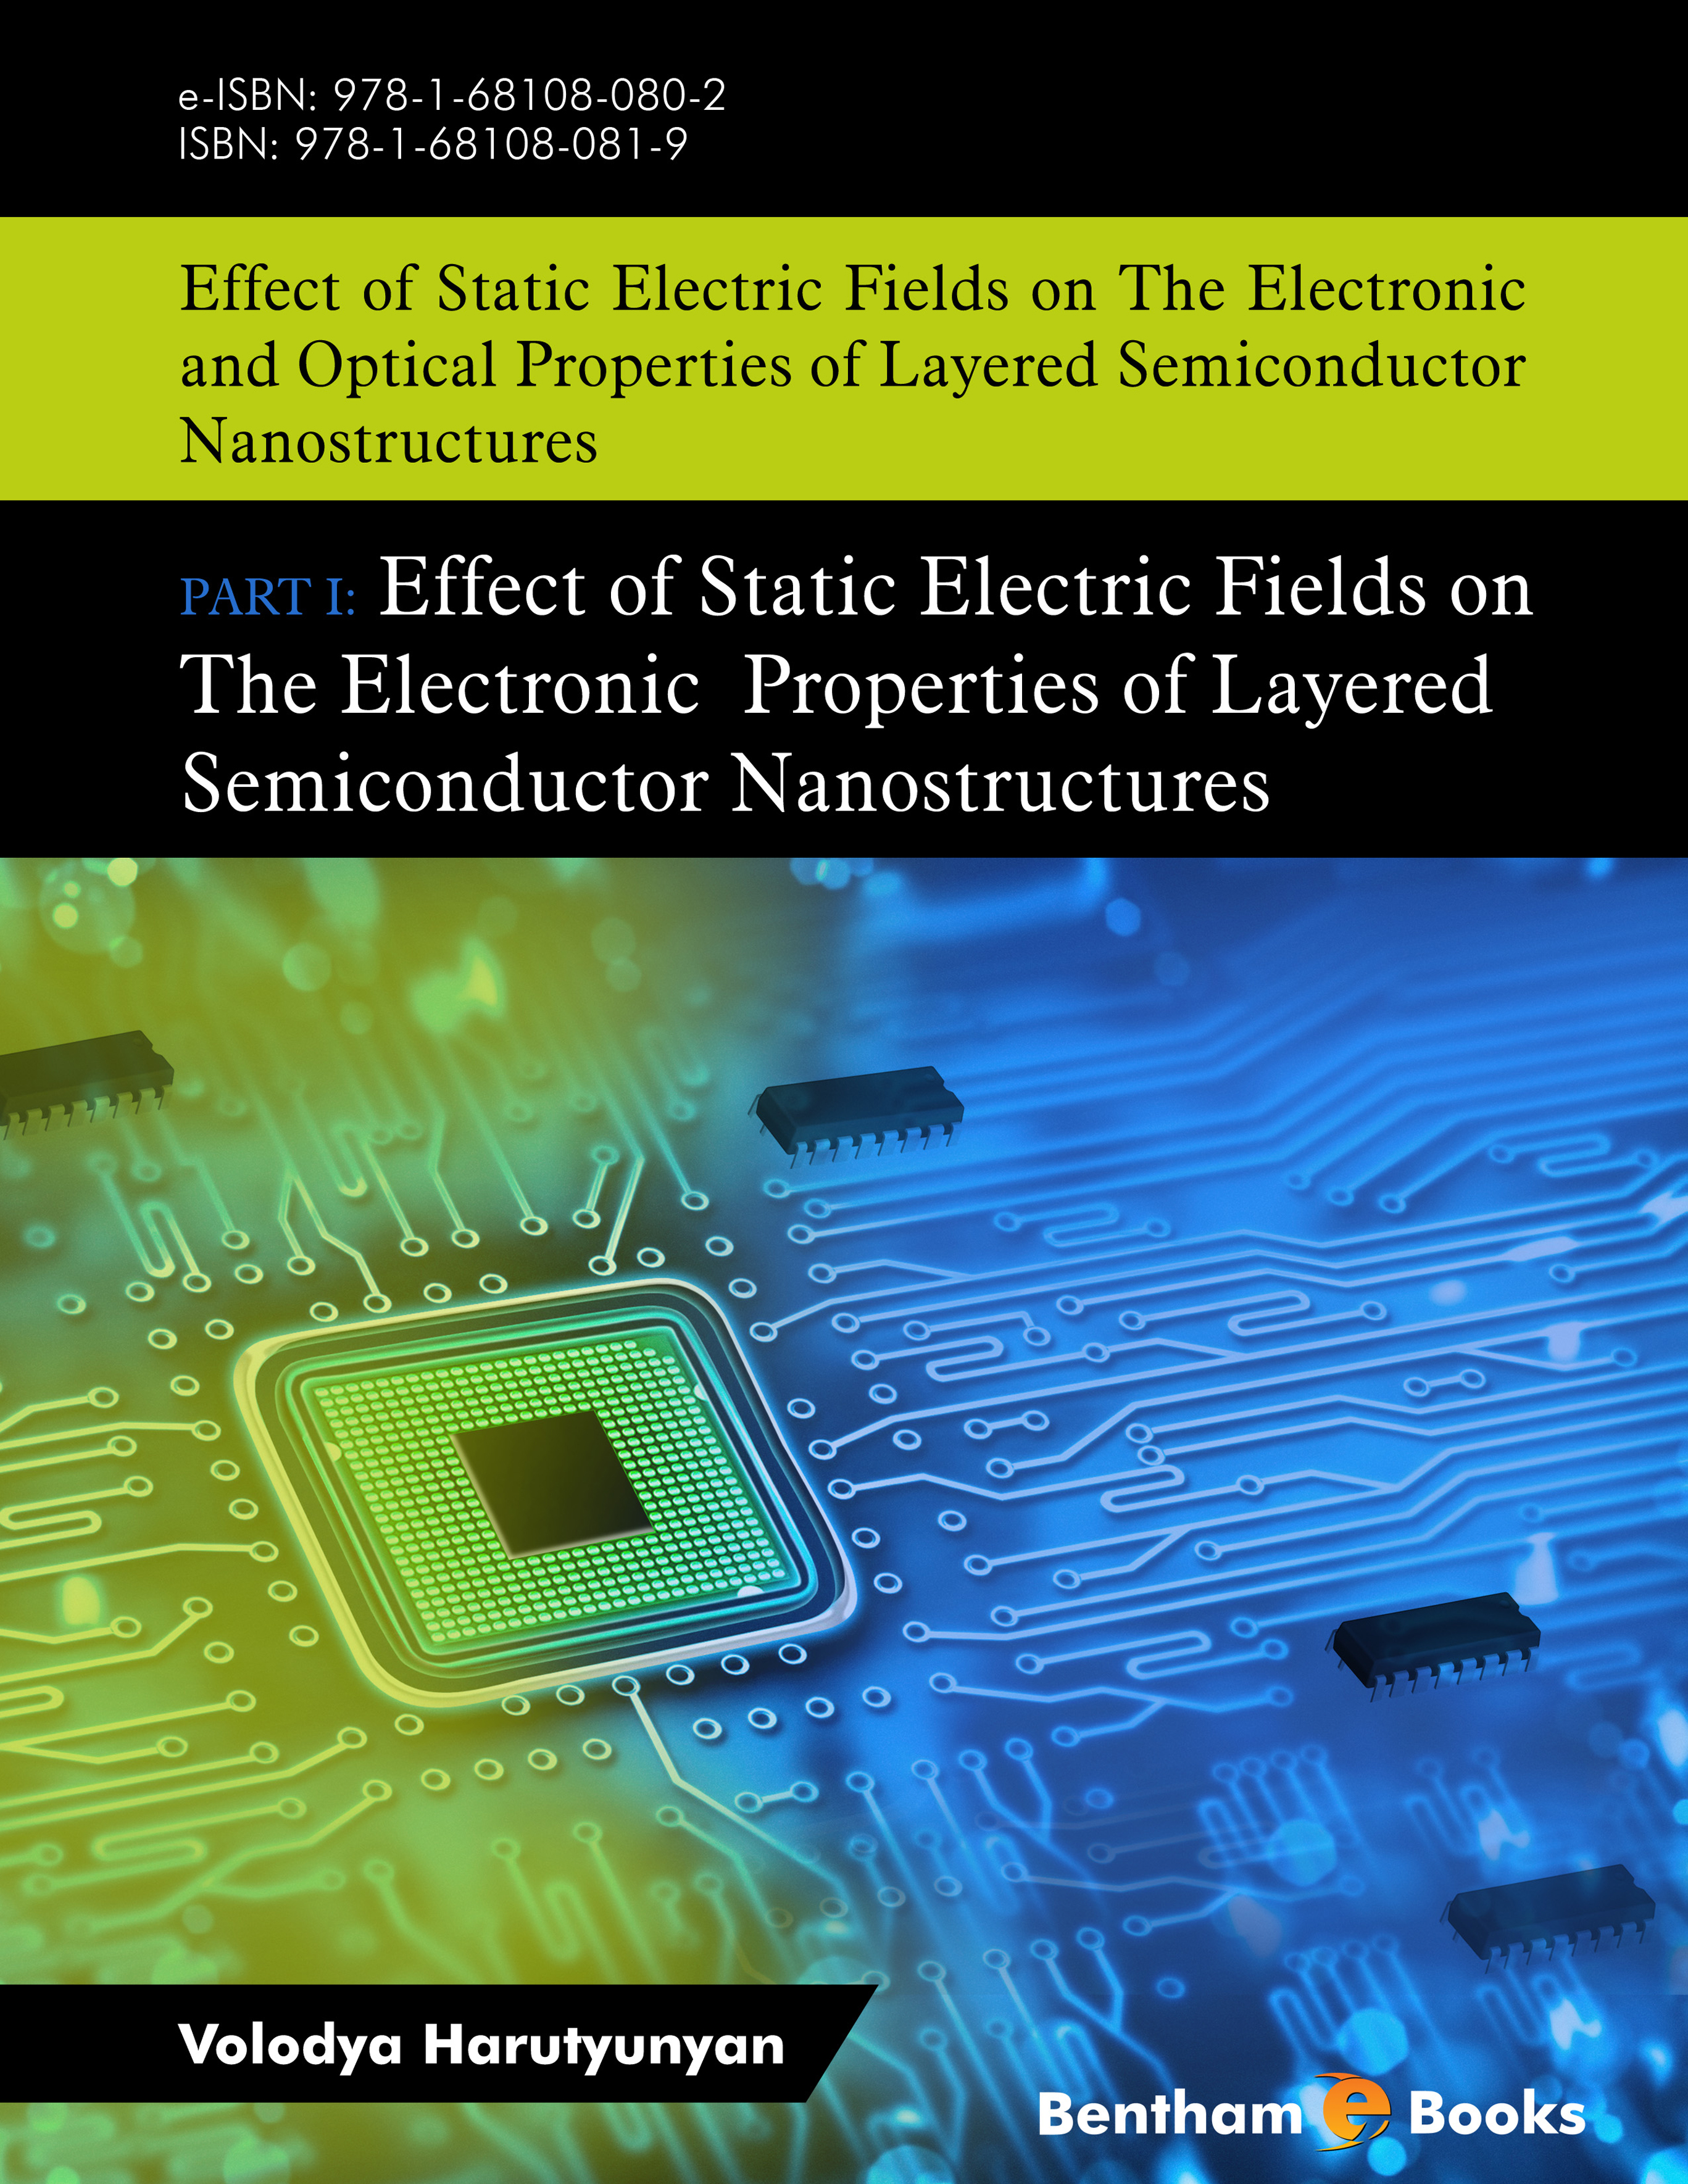 Effect of Static Electric Fields on The Electronic And Optical Properties of Layered Semiconductor Nanostructures